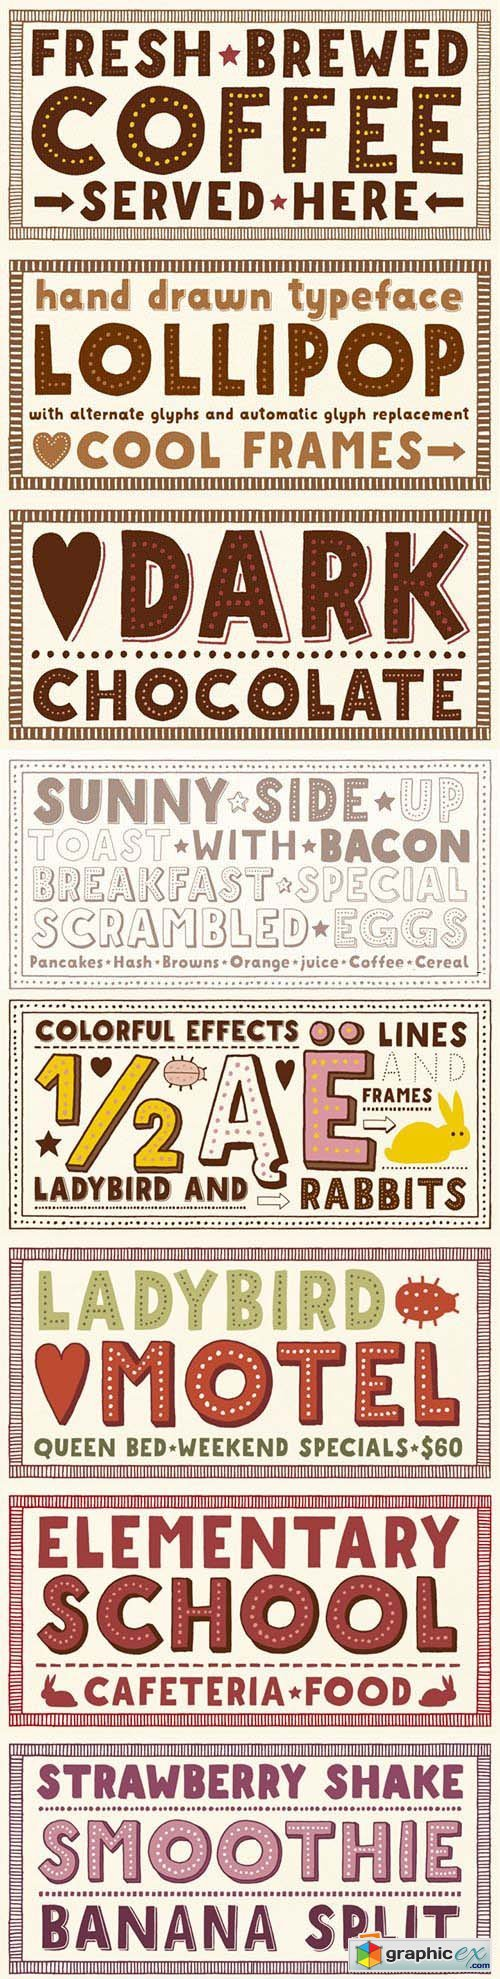 Mrs Lollipop Font Family - 13 Fonts $250